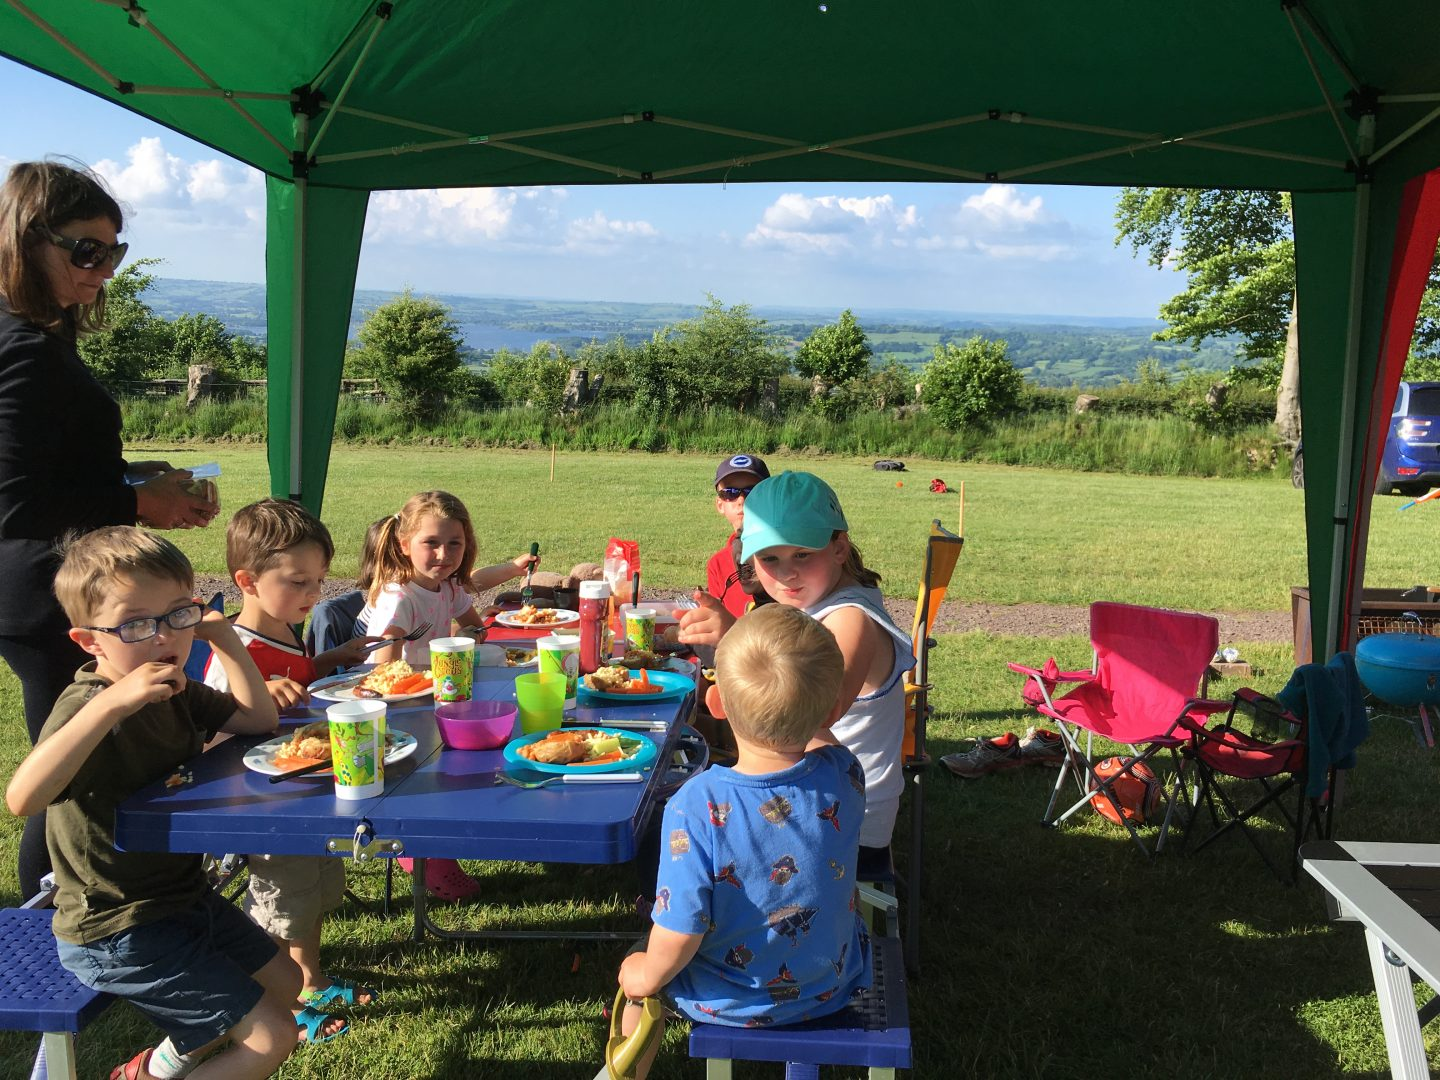 Dinner time at Nettwood Farm campsite